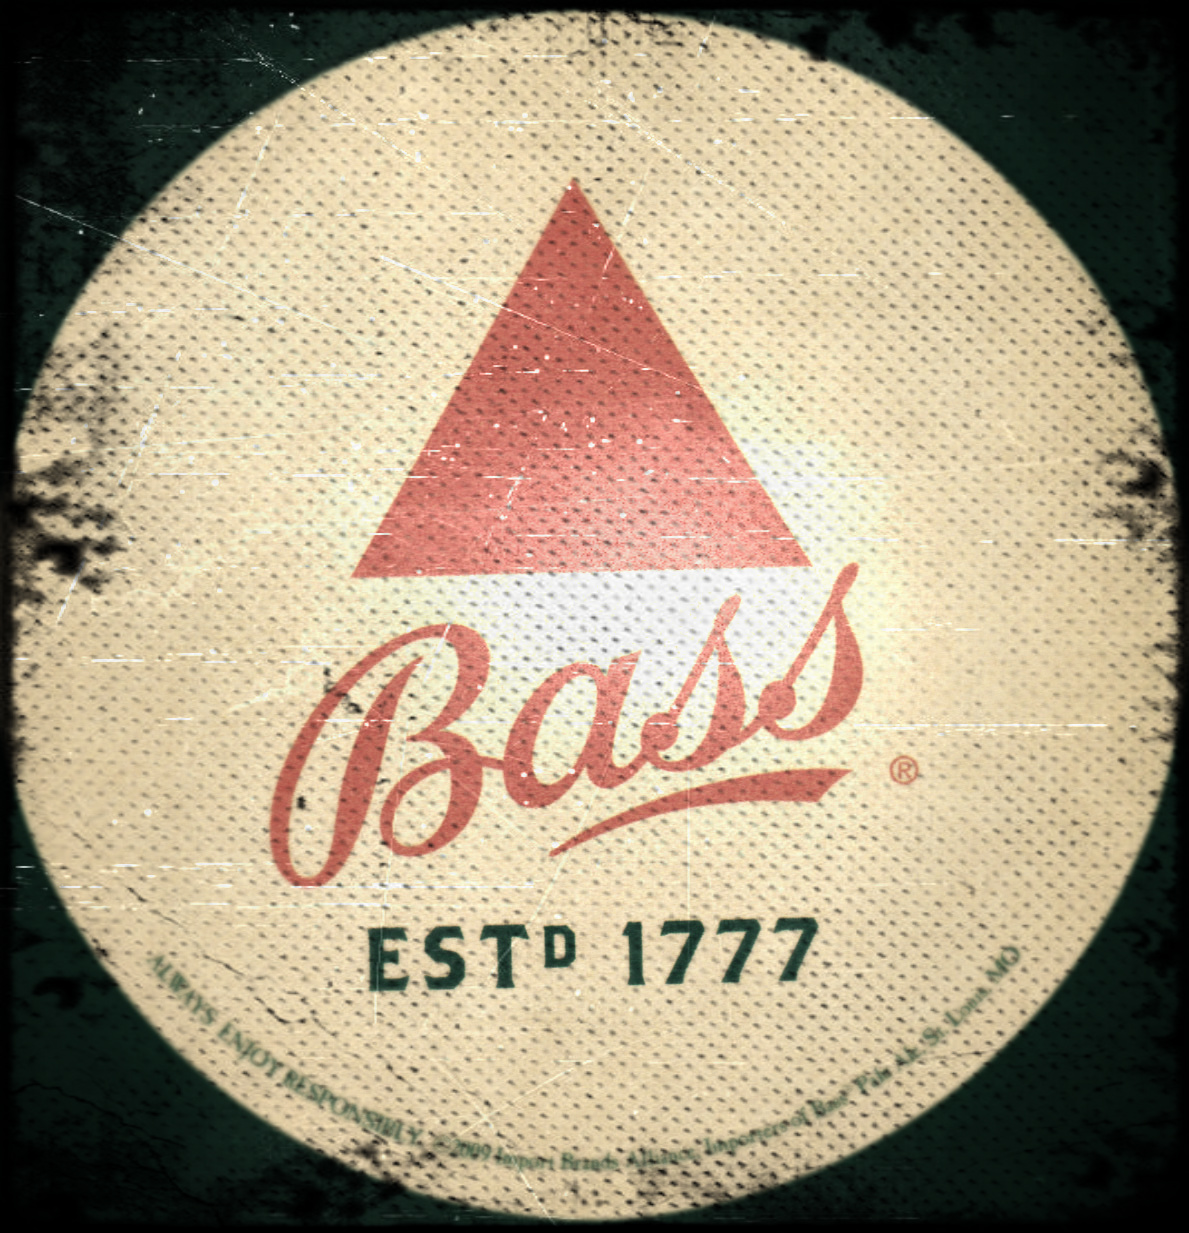 Basstards, The - If You Touch This, You Go To Heaven